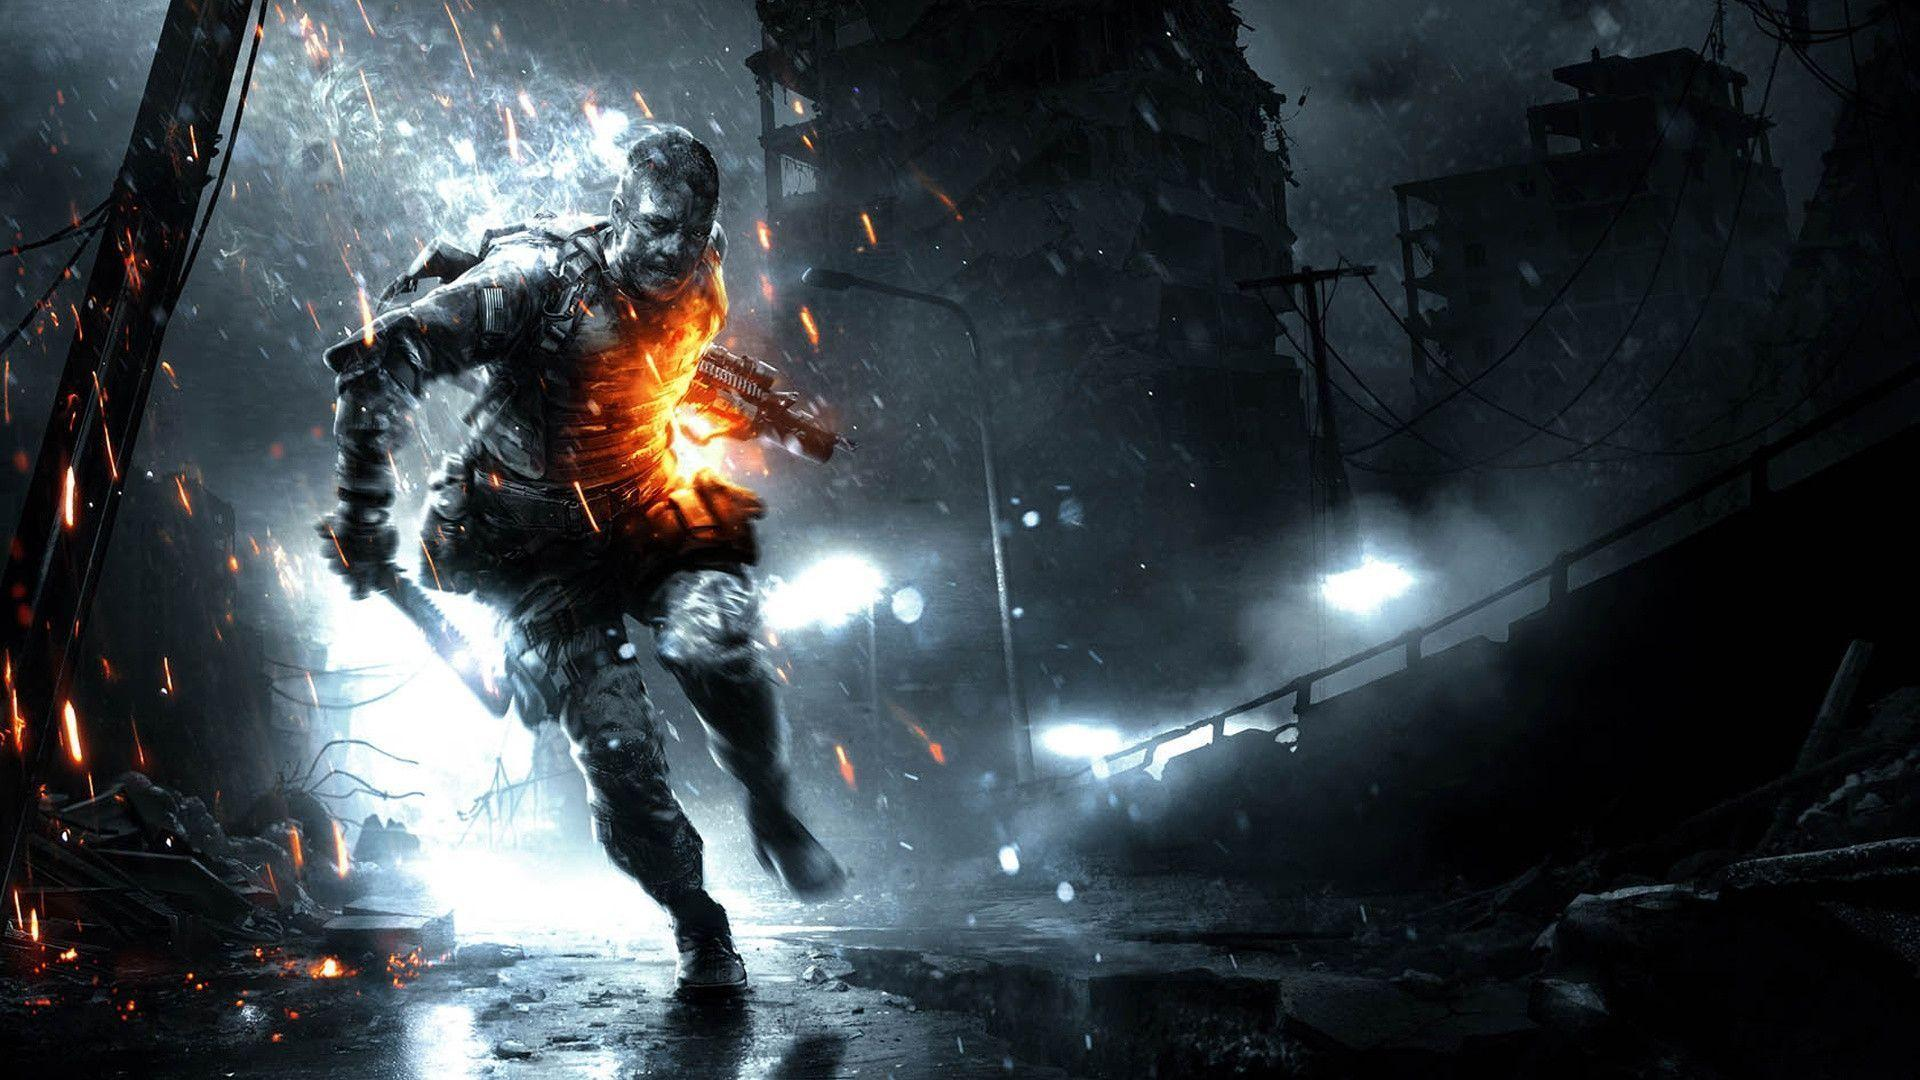 battlefield 3 wallpapers 1080p - wallpaper cave